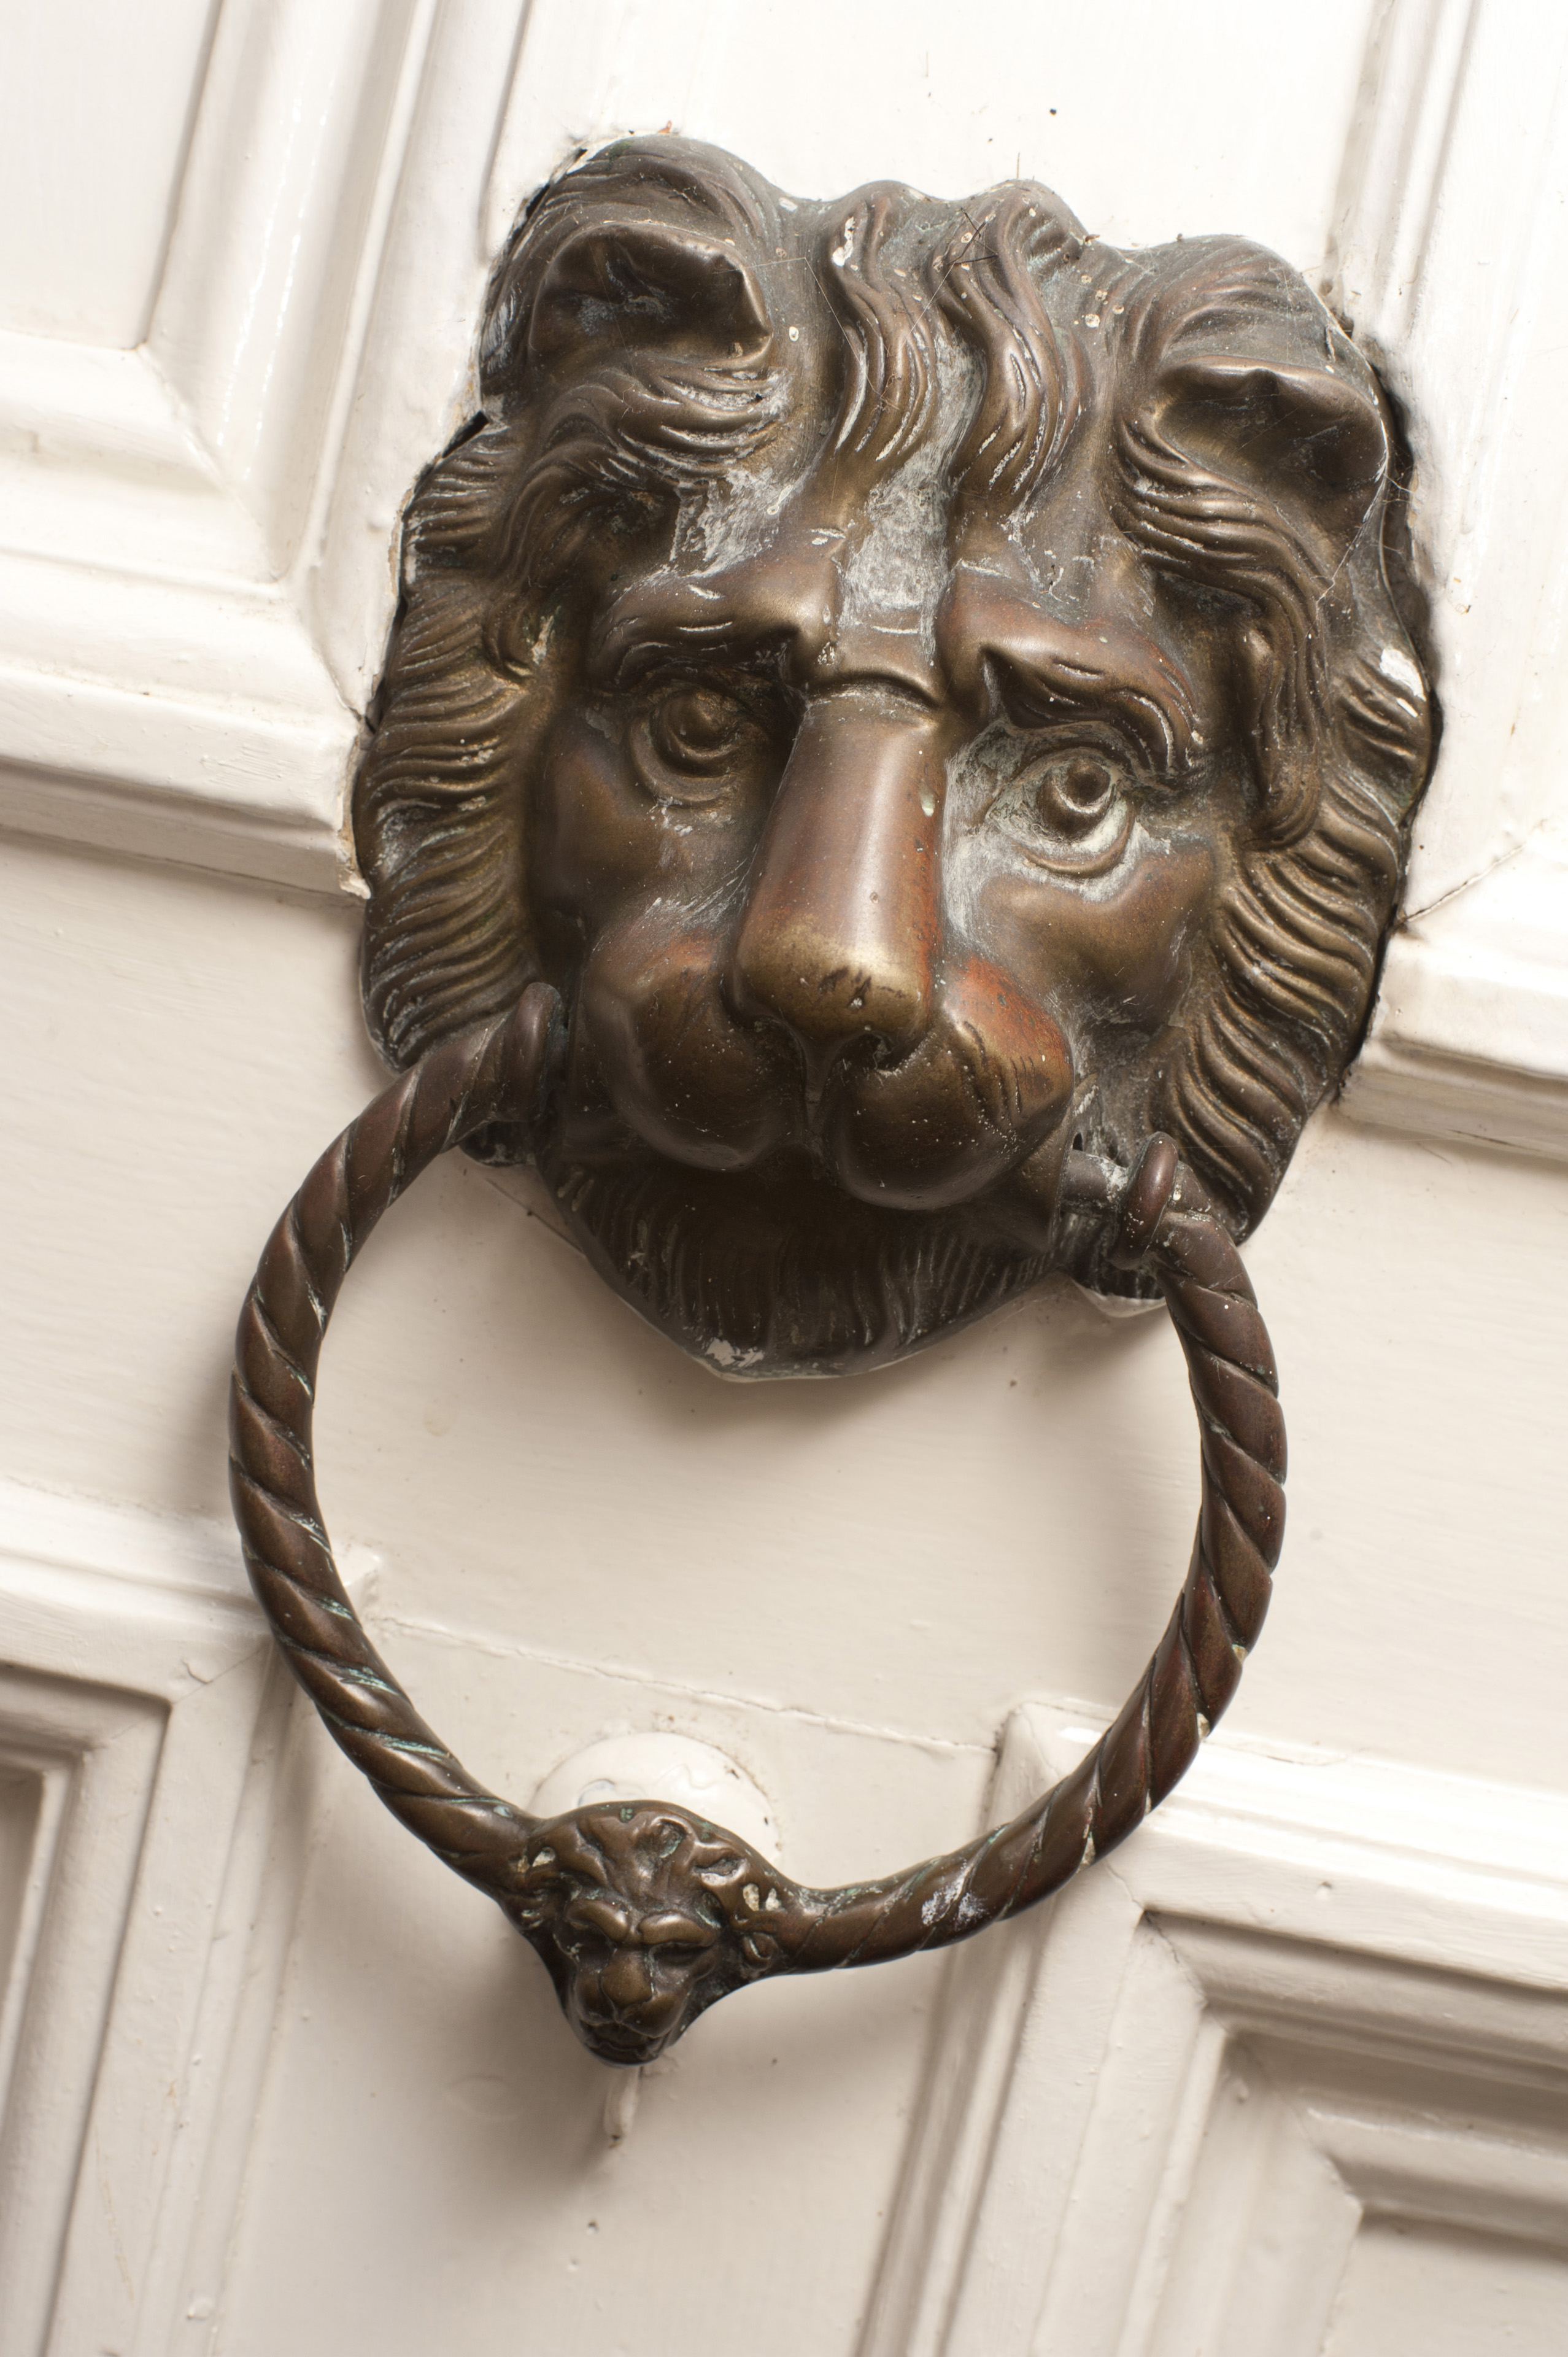 Brass door knocker of a lions head with a ring in its mouth for banging in & Image of Brass door knocker of a lions head | Freebie.Photography